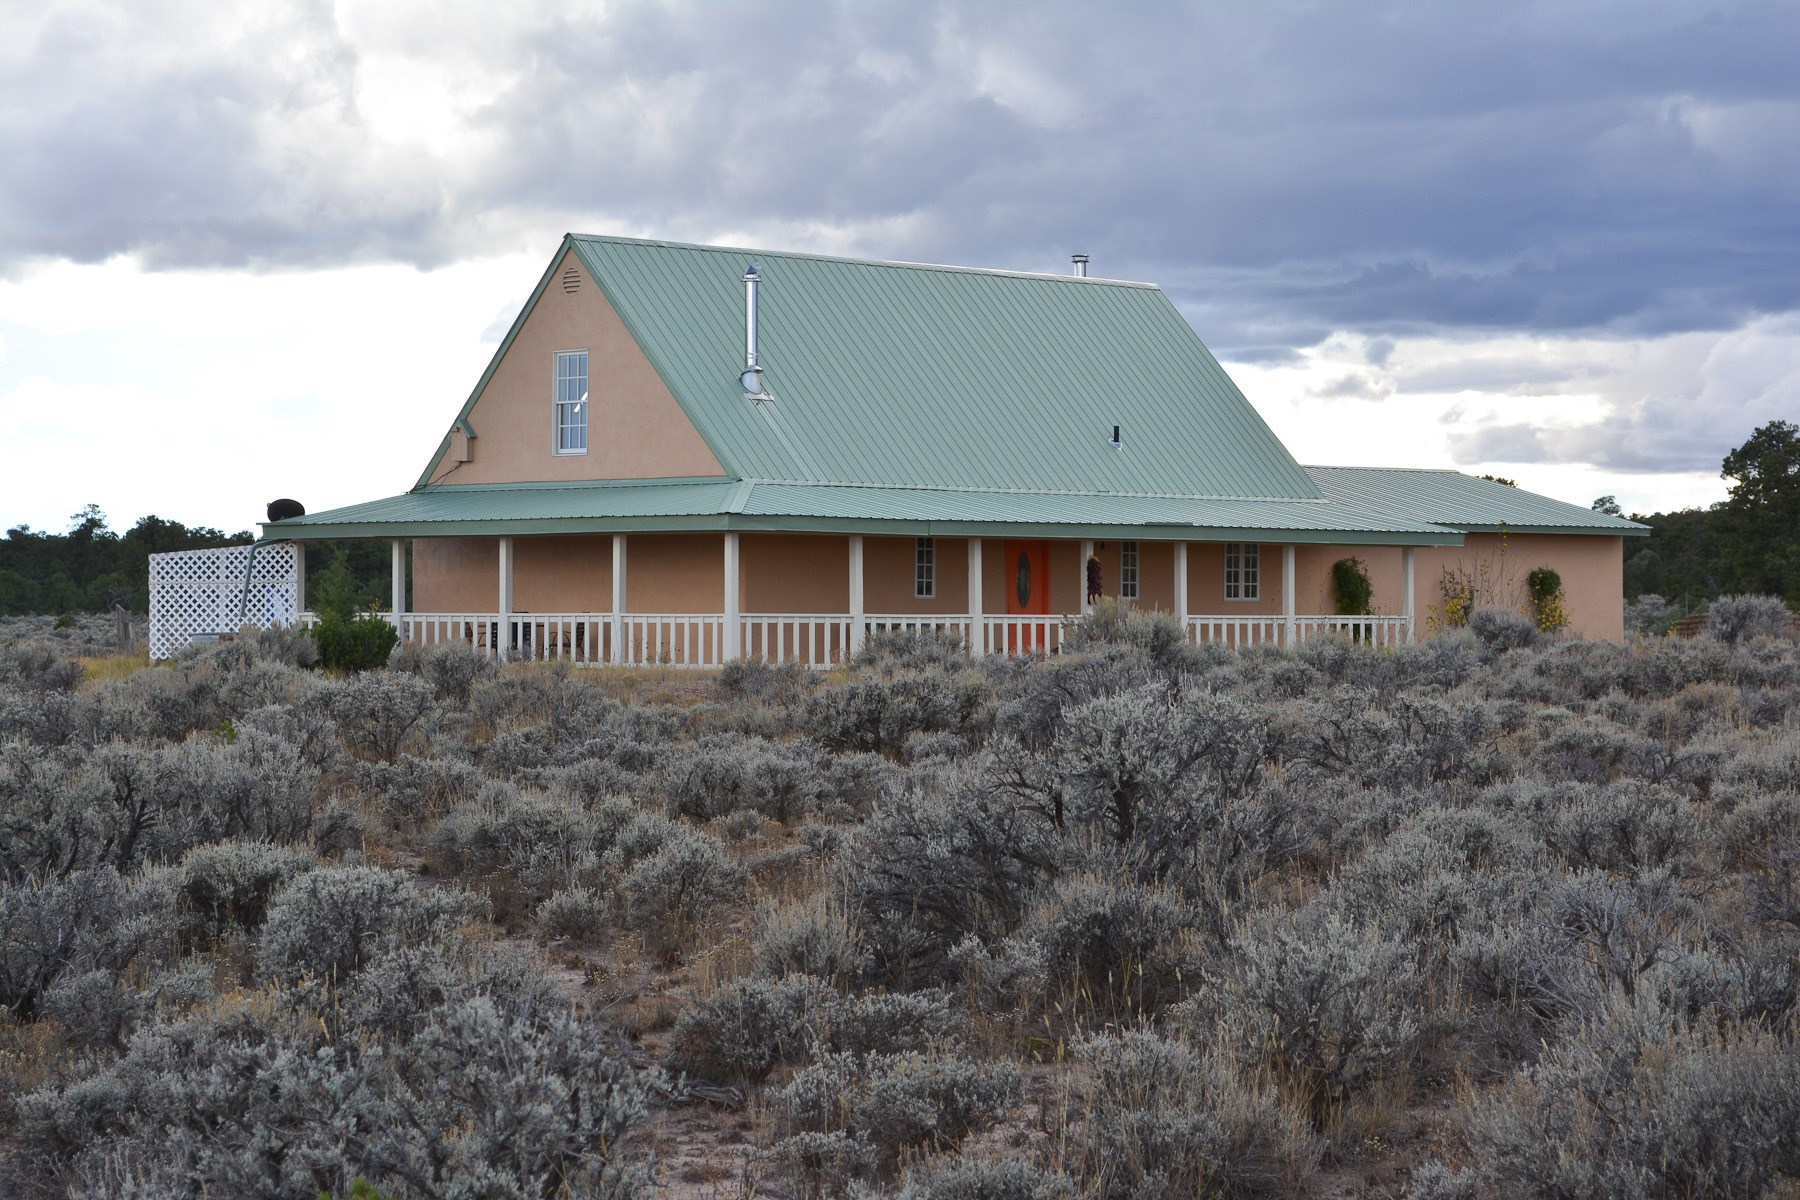 tres piedras catholic singles Your tres piedras real estate search starts here view 40 active homes for sale in tres piedras, nm and find your dream home, condo, townhome, or single family home.